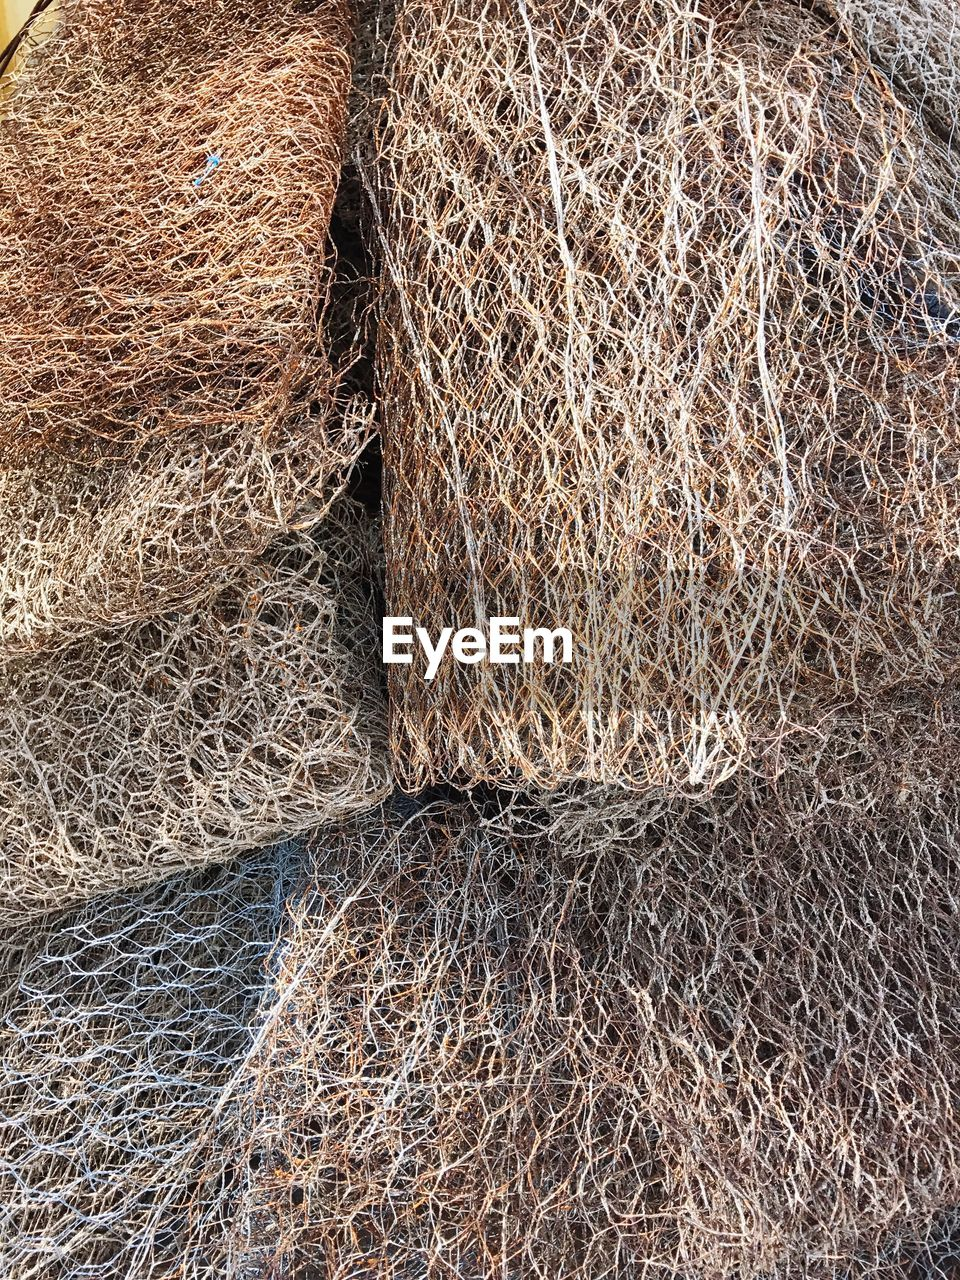 full frame, backgrounds, rolled up, fishing net, fishing equipment, stack, no people, outdoors, textured, fishing tackle, day, close-up, brown, hay bale